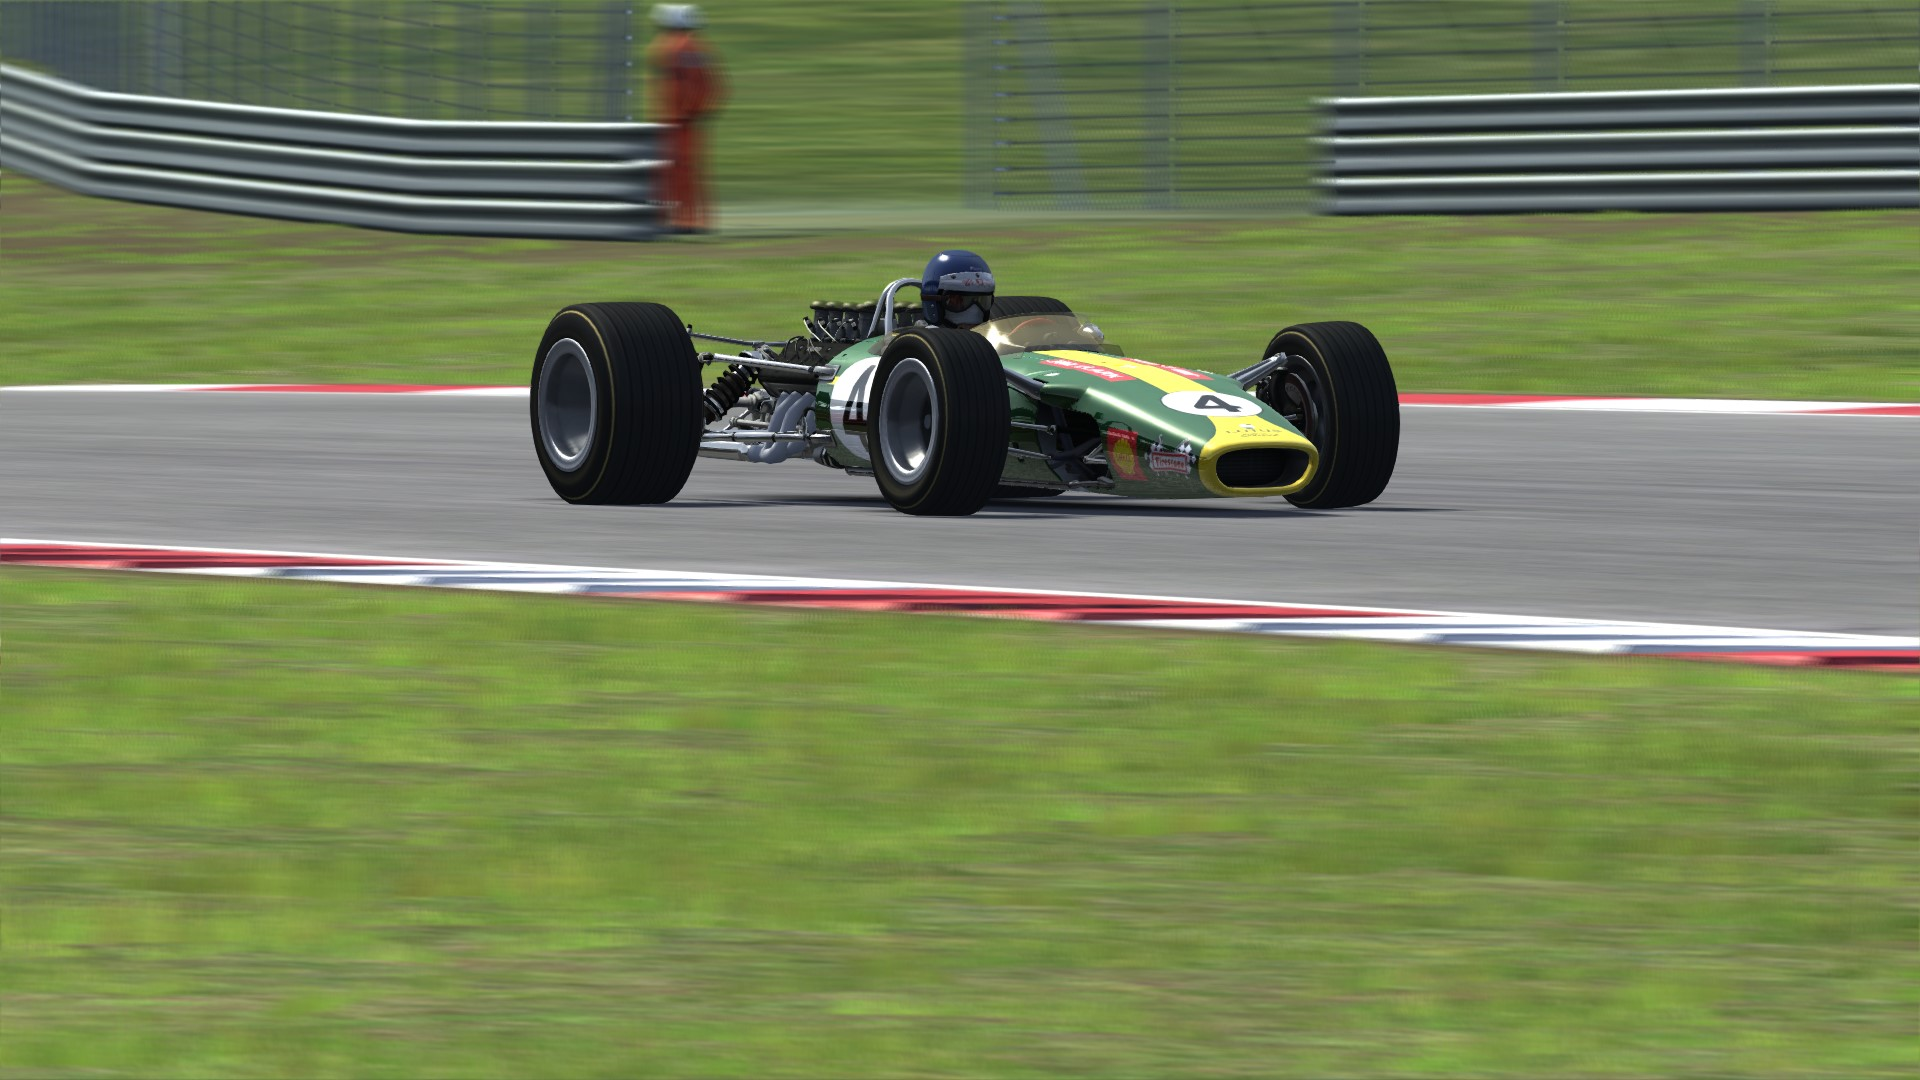 Screenshot_lotus_49_silverstone_13-12-2013-21-5-30.jpg